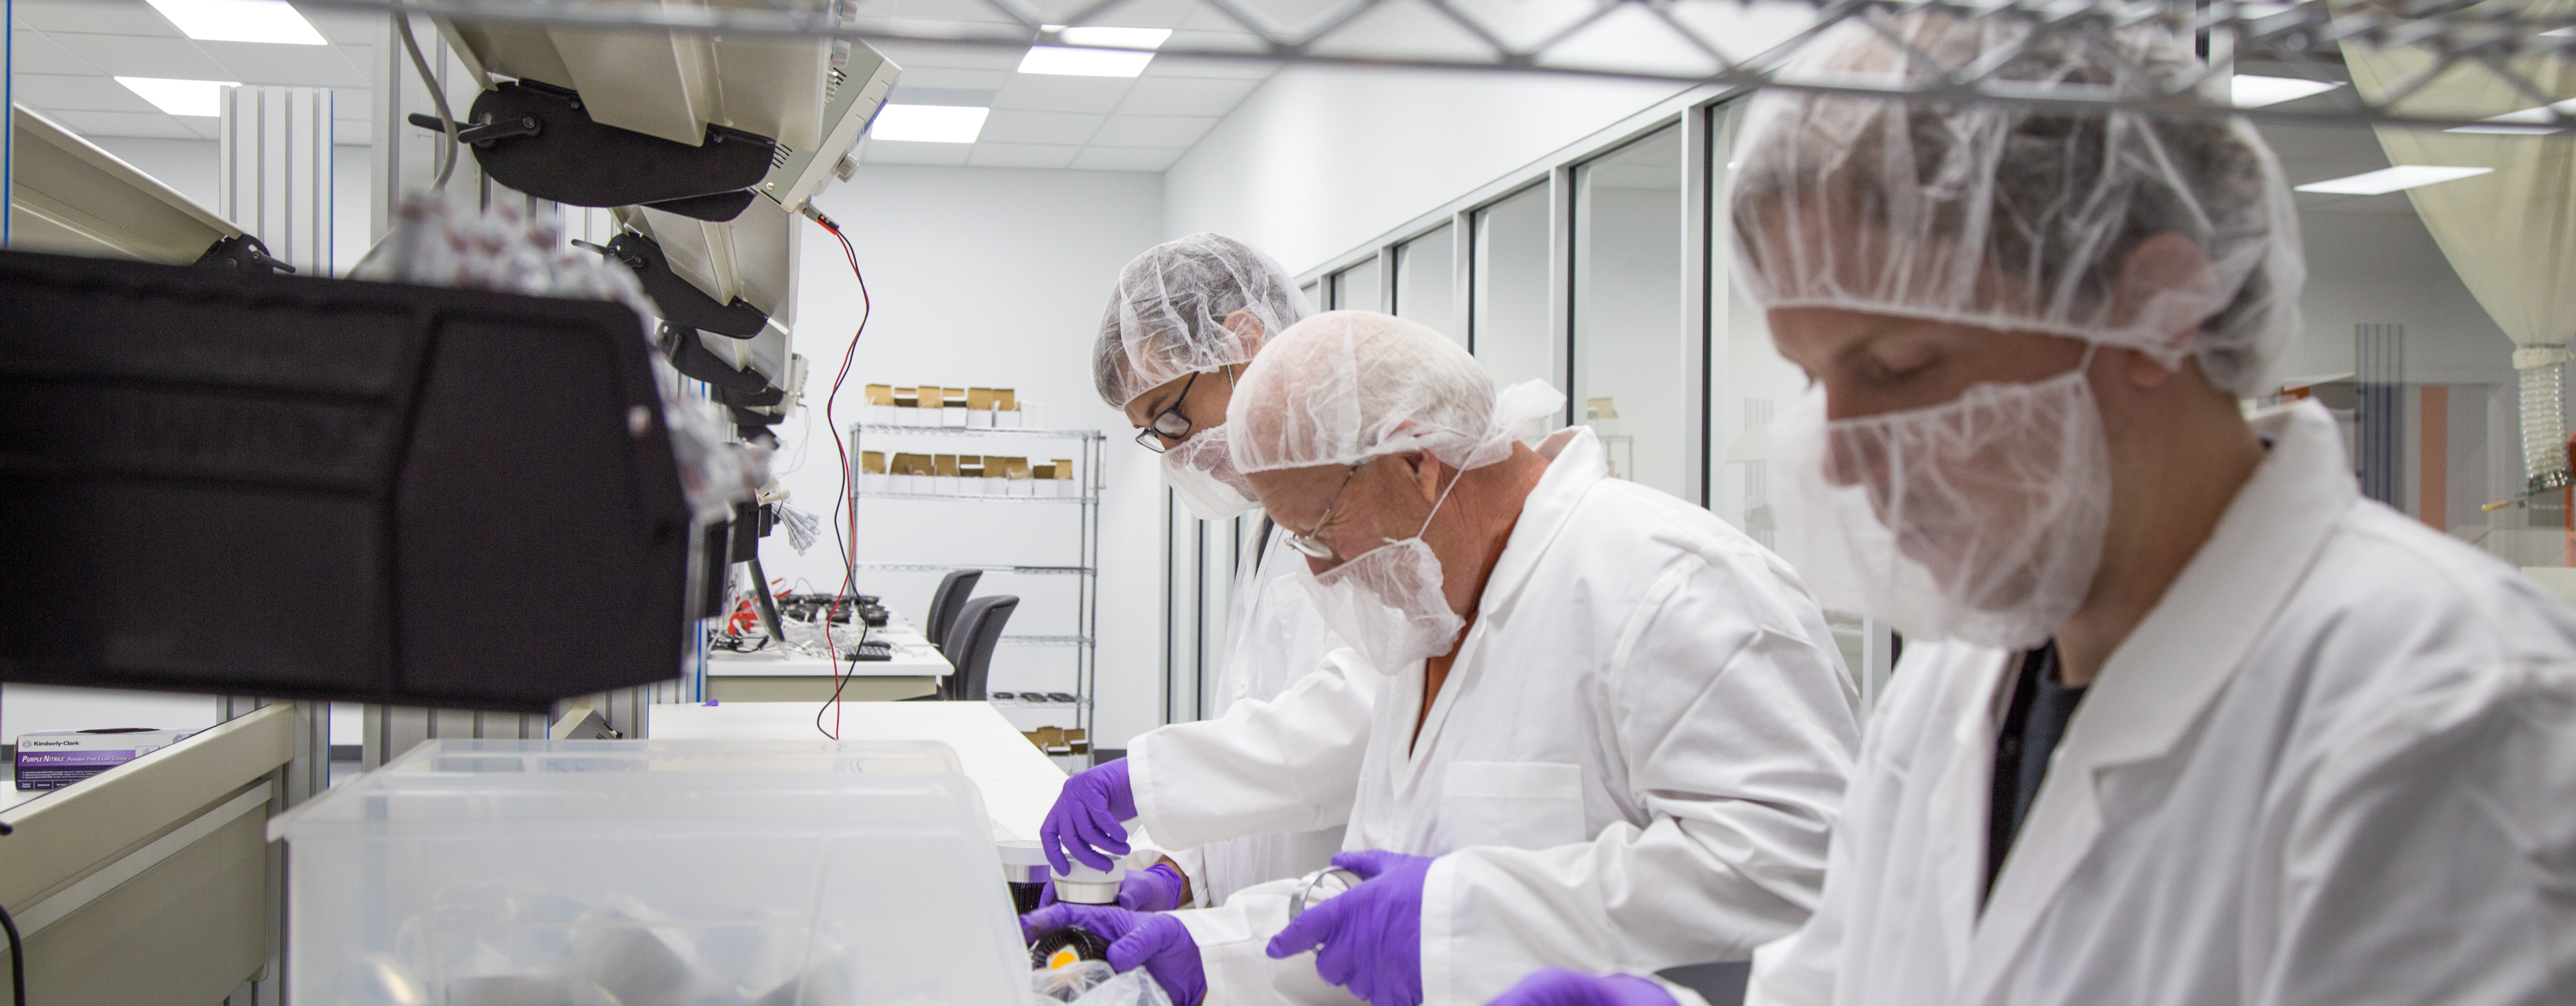 Workers in Clean Room